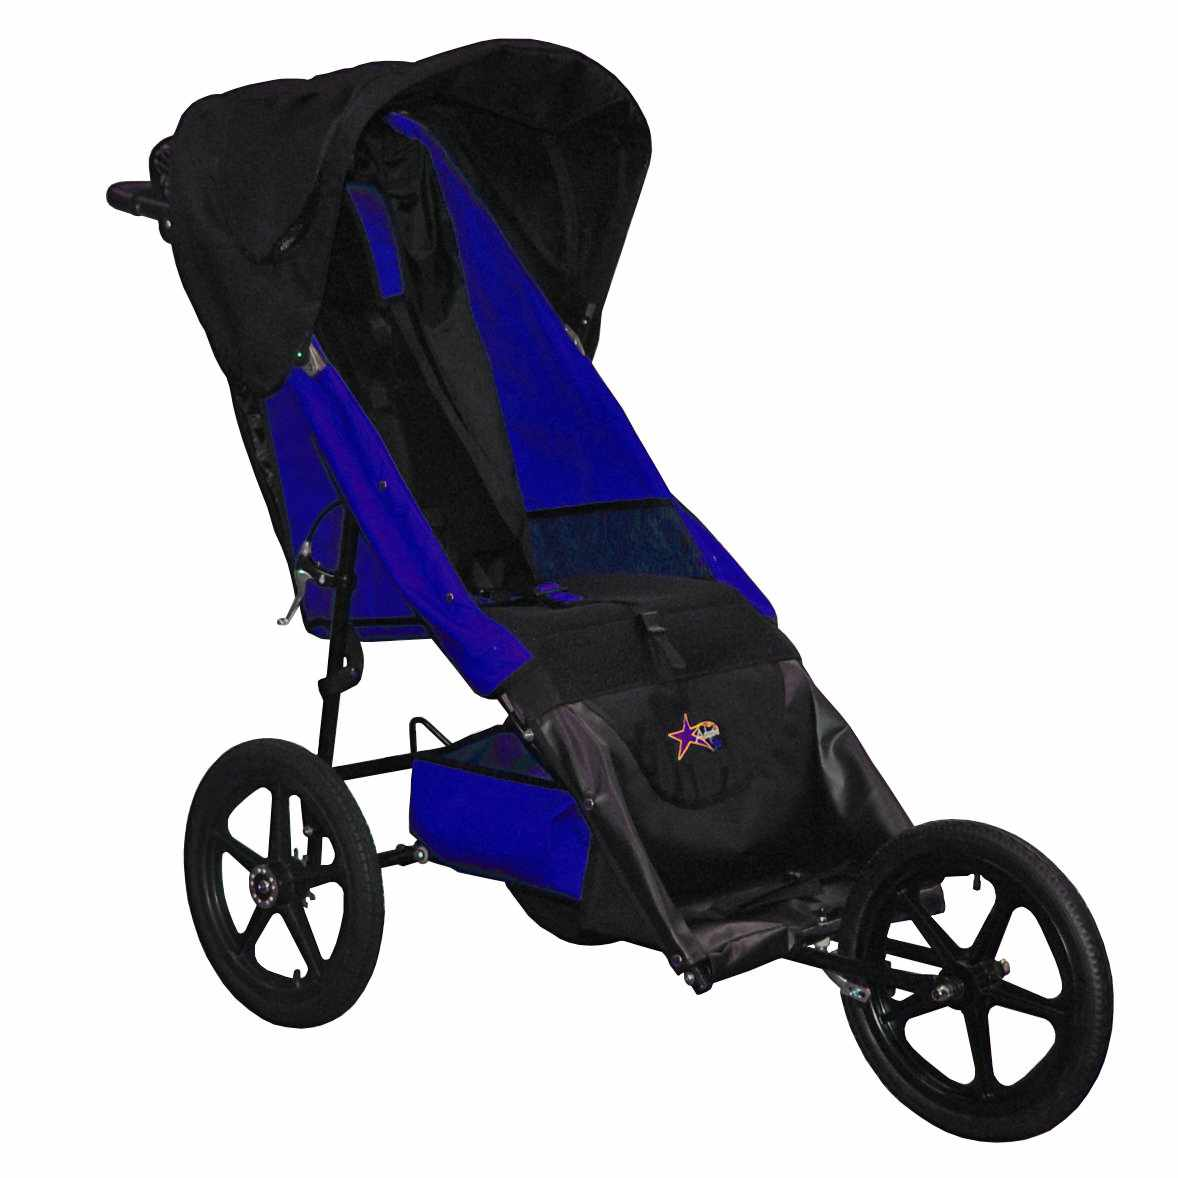 Adaptive star axiom endeavour indoor/outdoor mobility push chair